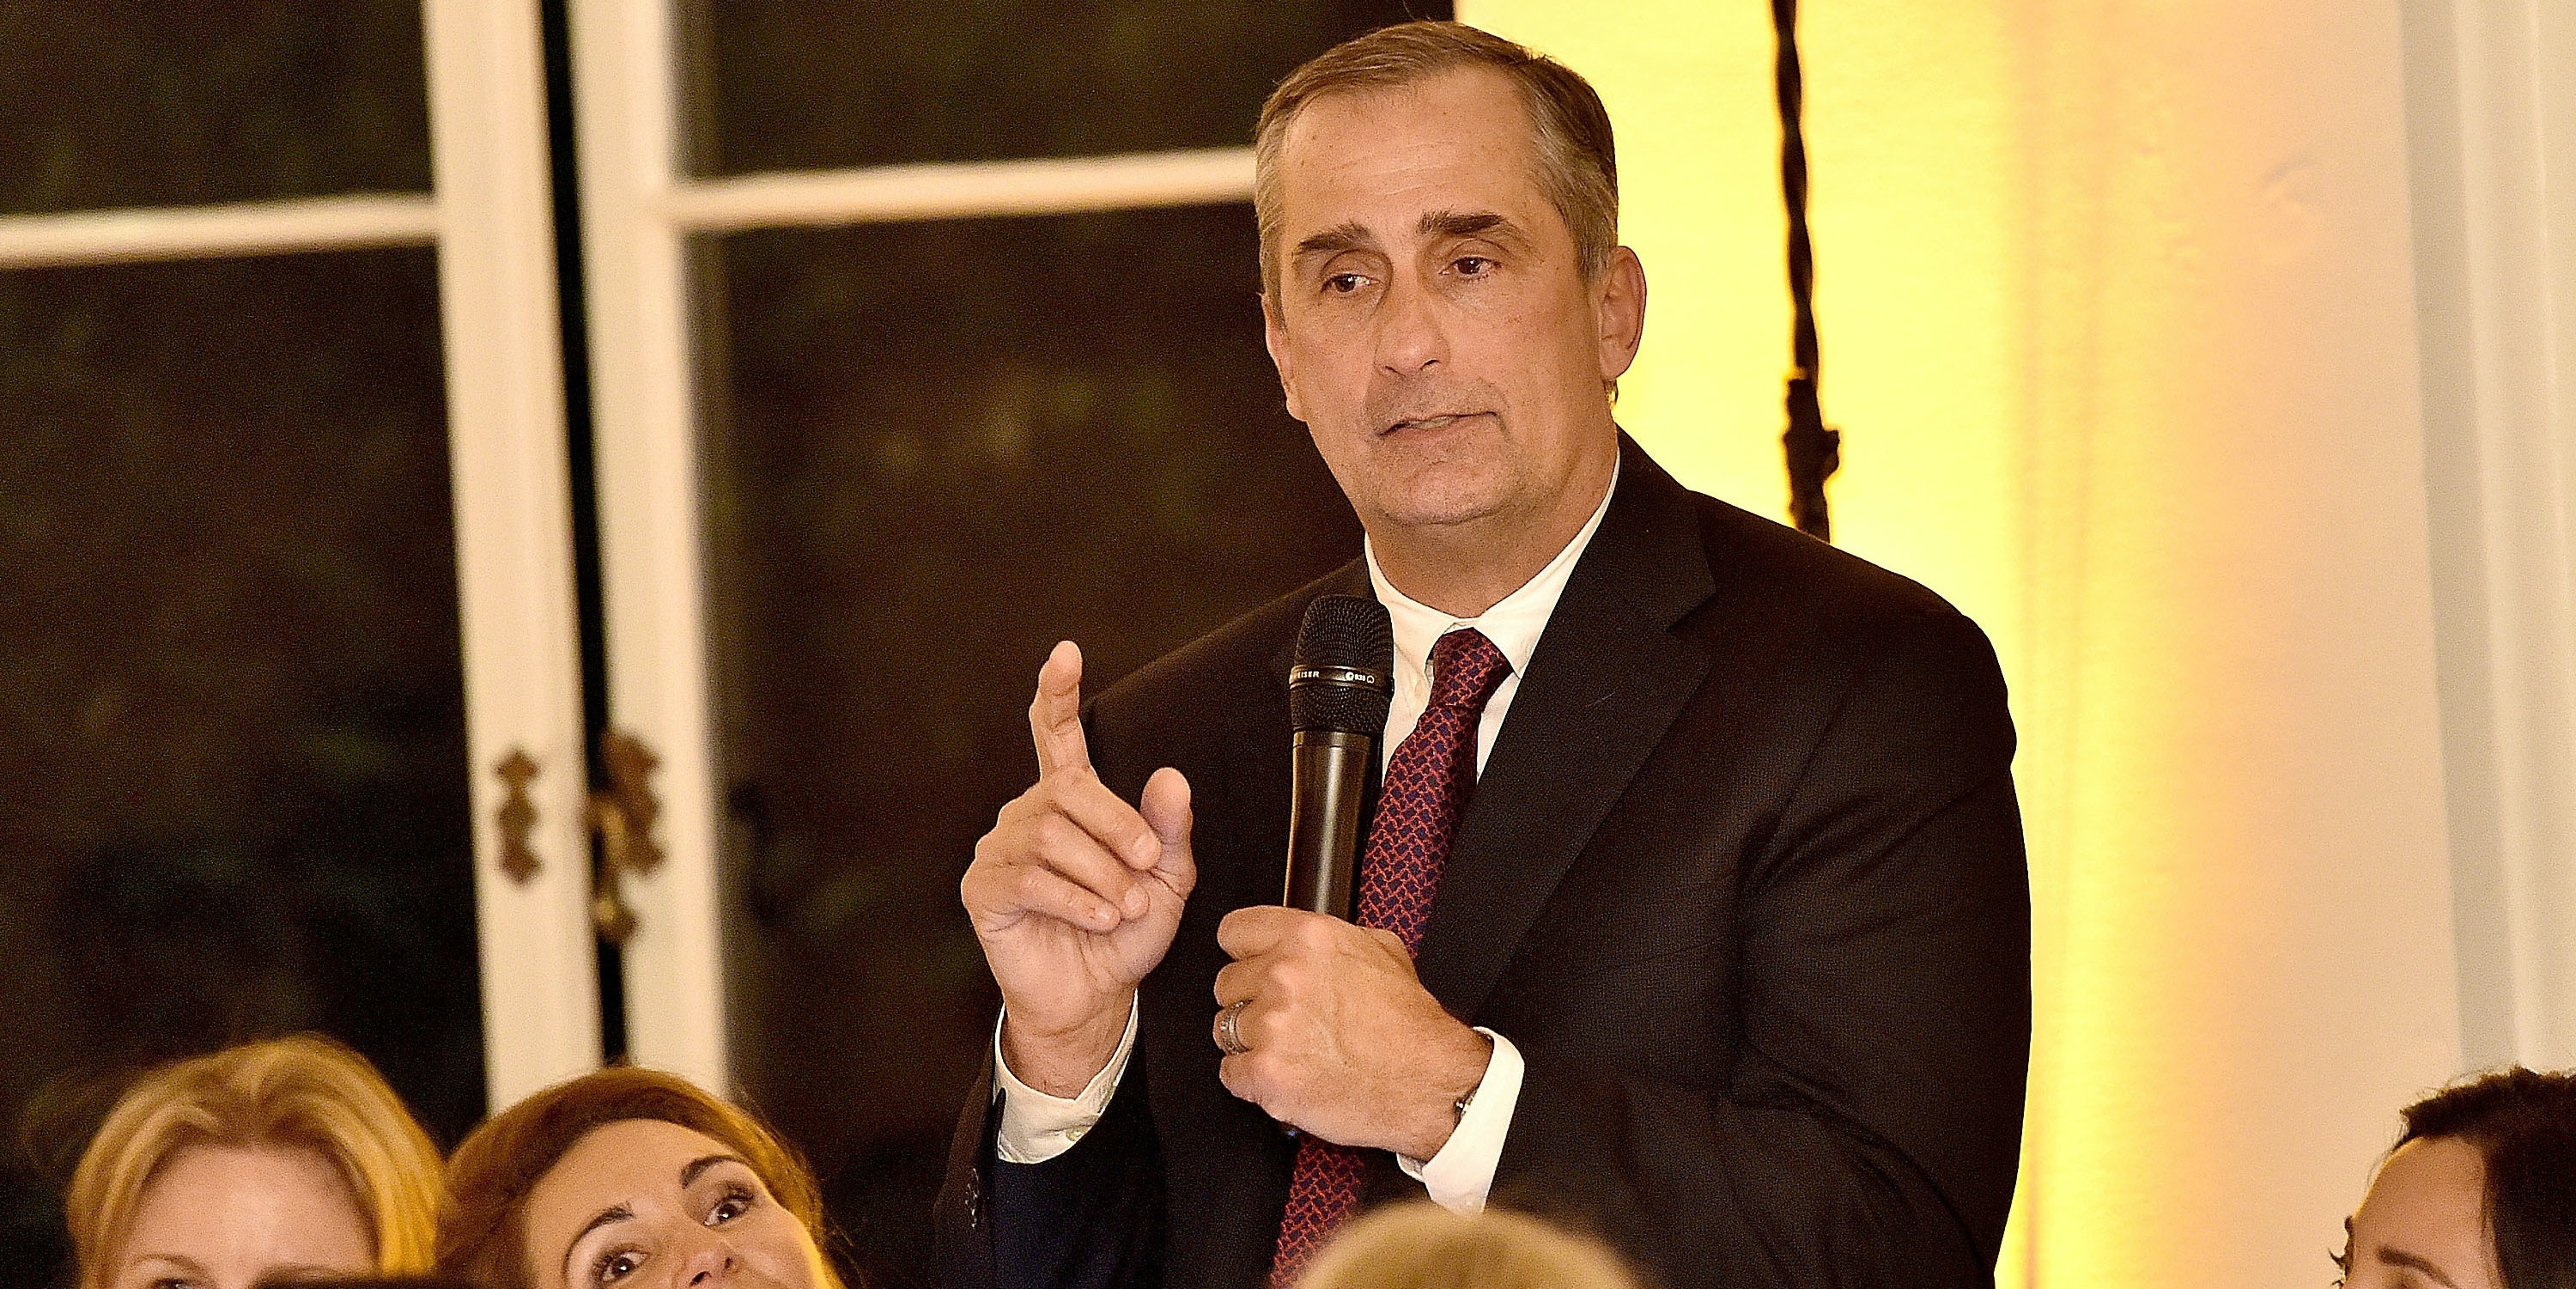 Brian Krzanich,CEO of Inteland chairman of the FAA's Drone Advisory Commitee,attends The Dinner For Equality co-hosted by Patricia Arquette and Marc Benioff on February 25, 2016 in Beverly Hills, California.